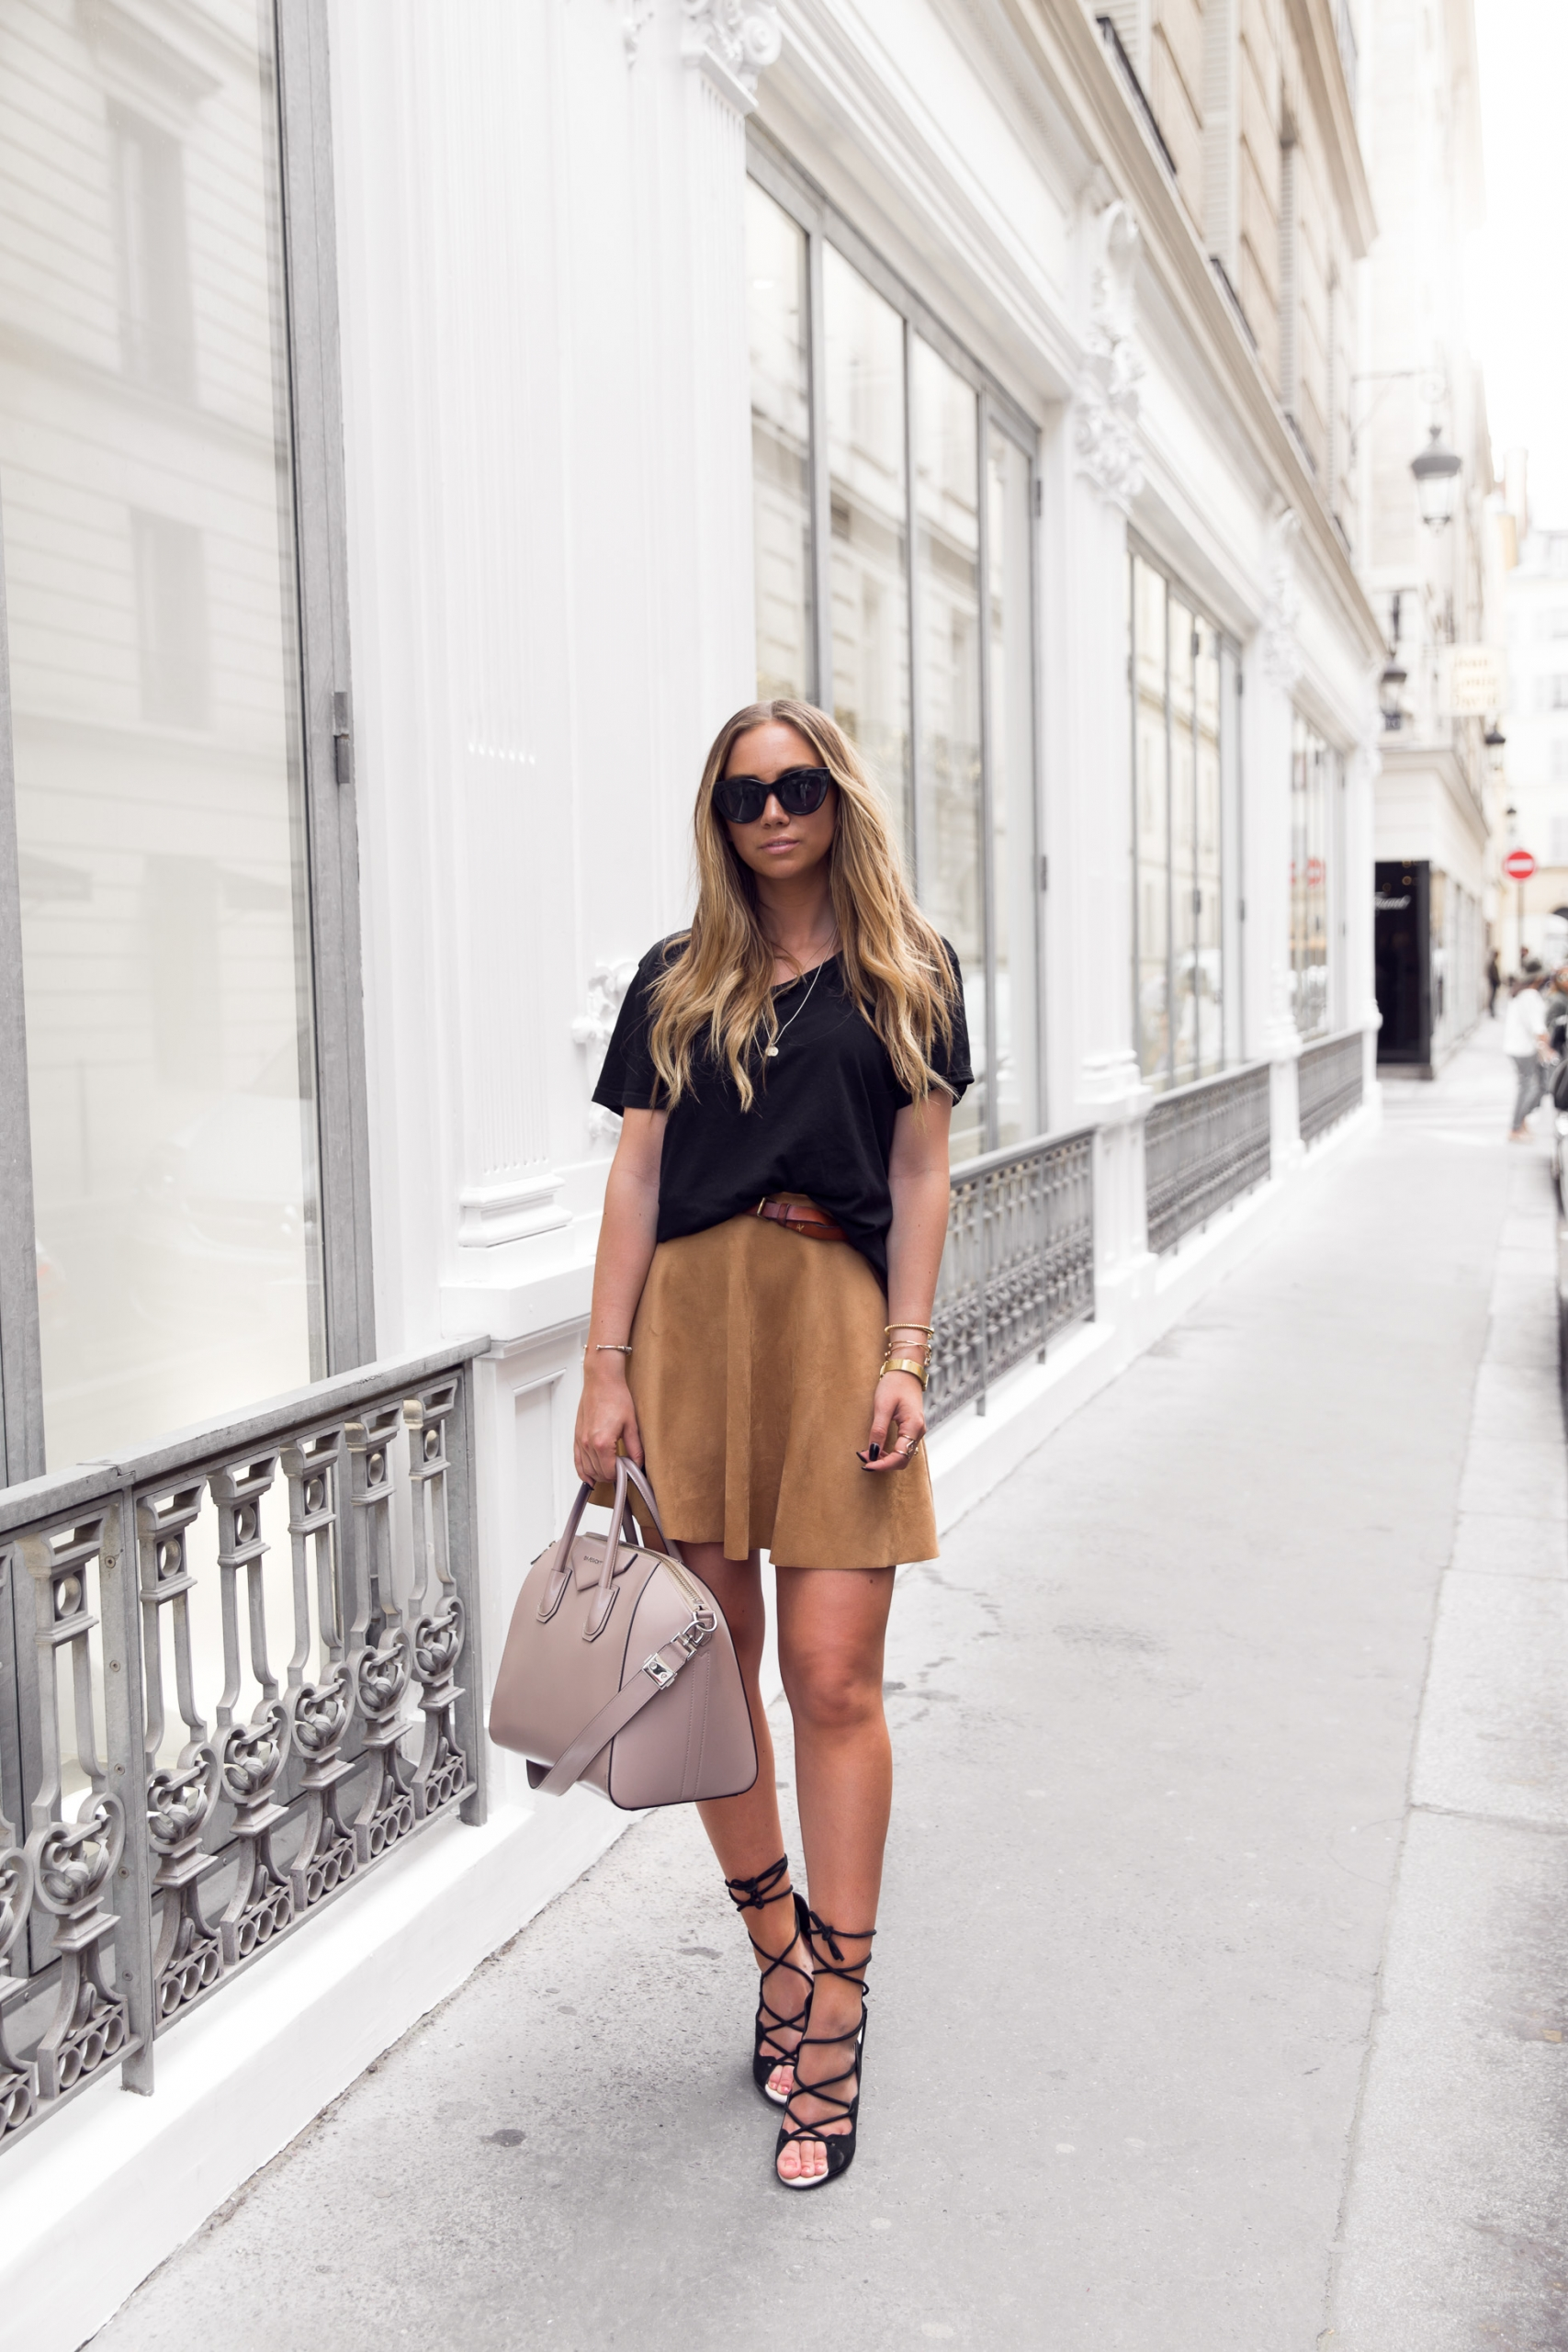 Suede & Fringe – Top Fashion Trends for Fall 2015